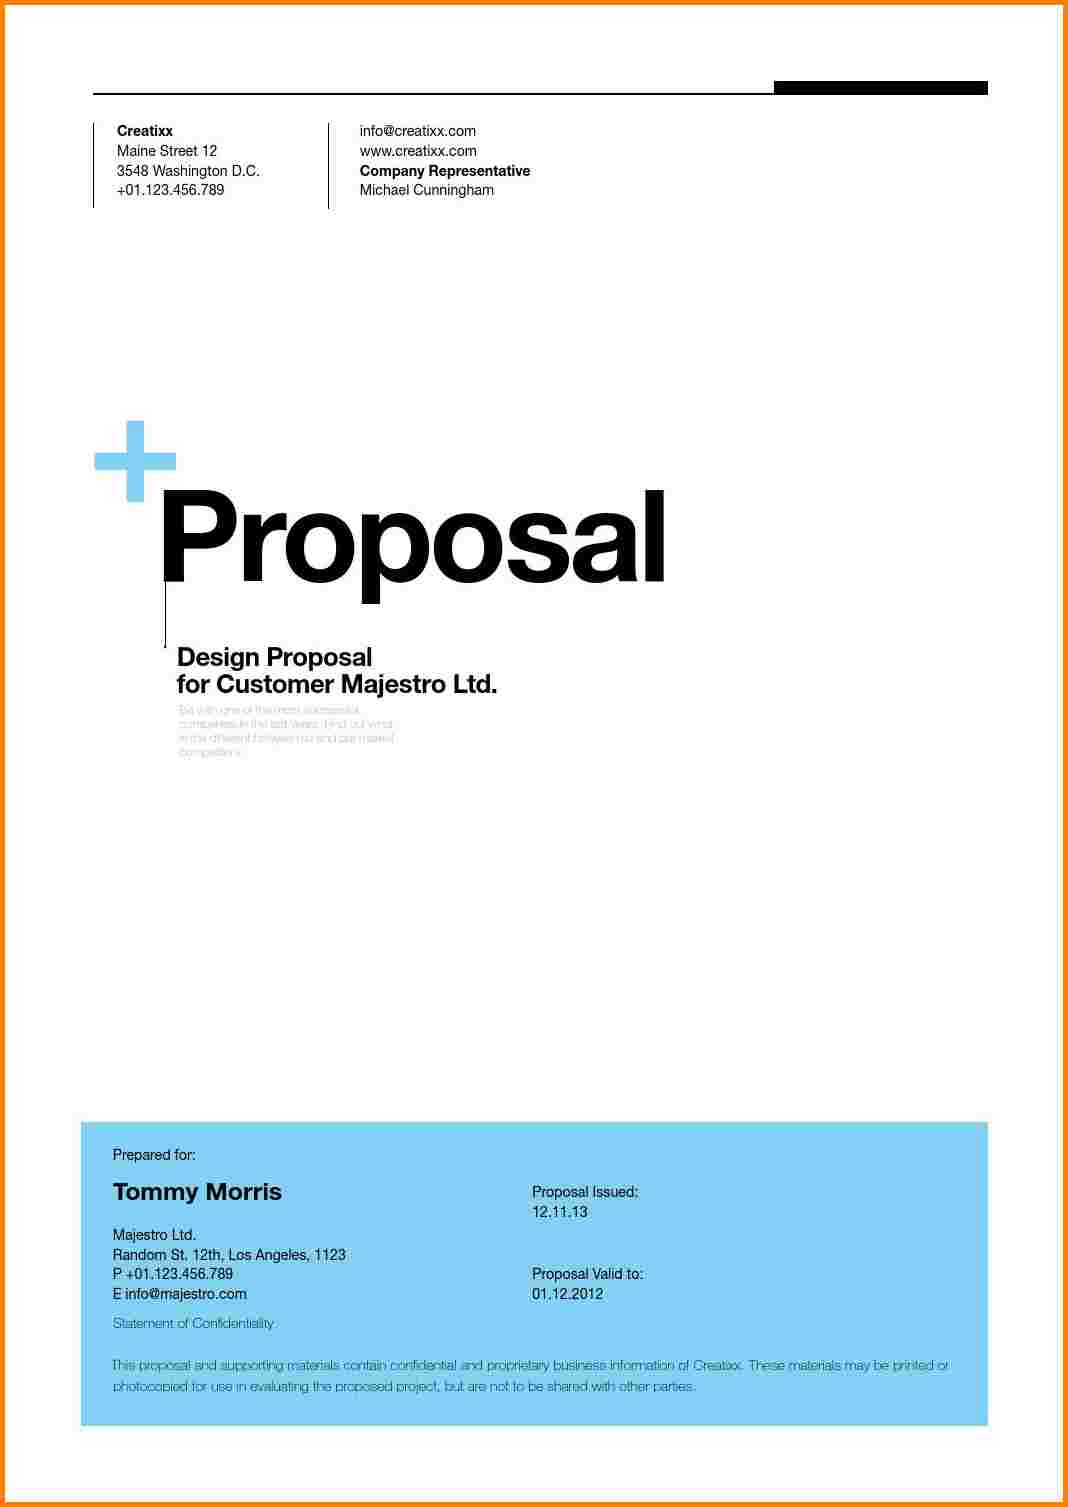 cover page of proposal Romeo.landinez.co